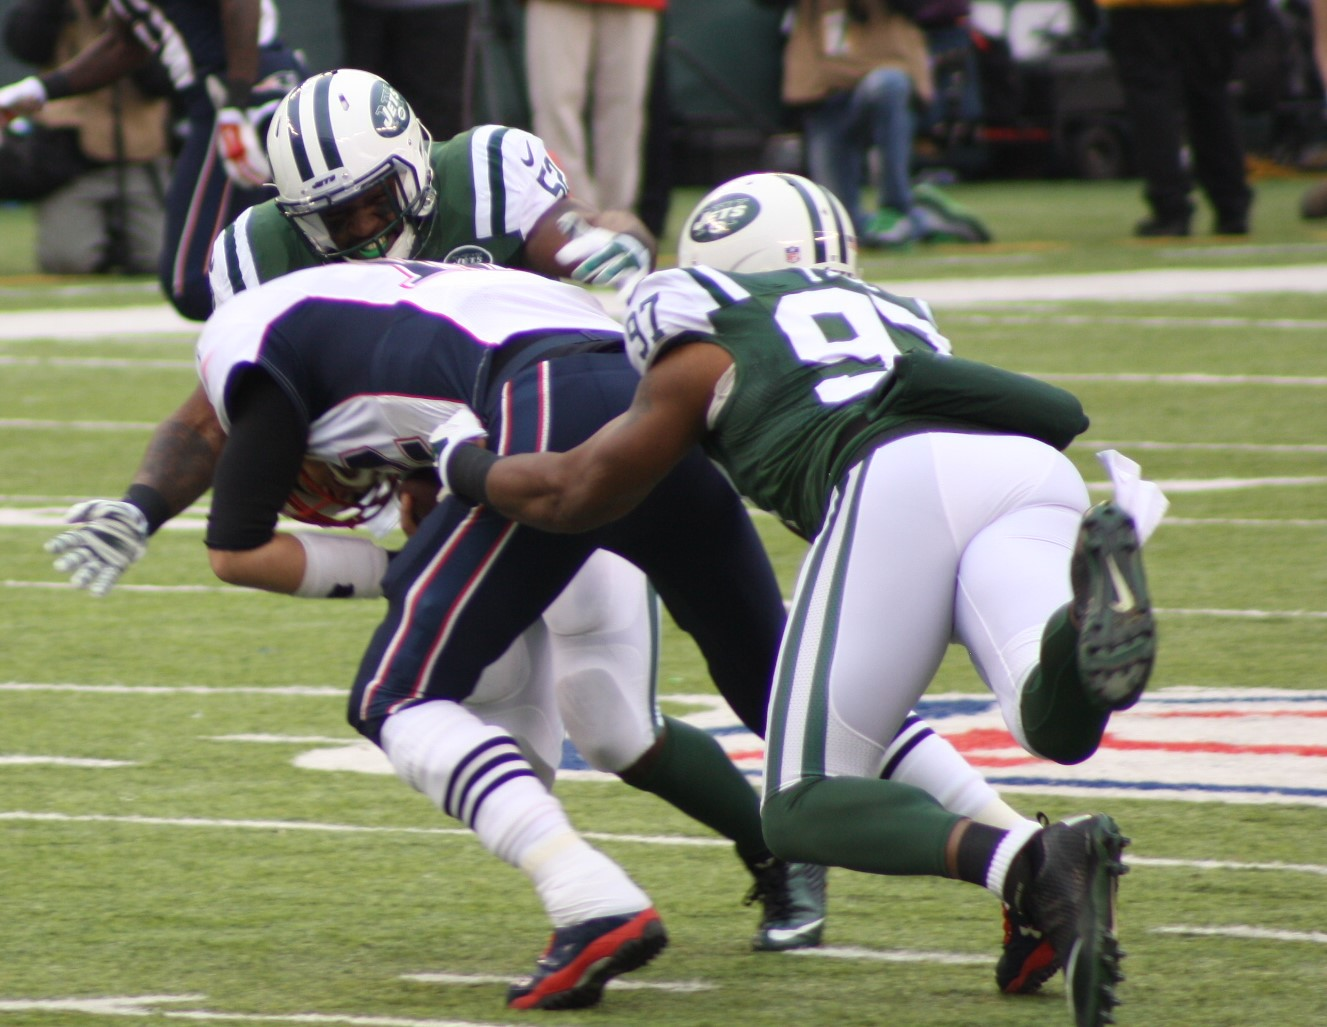 Has David Harris Played his Final Game as a New York Jet?